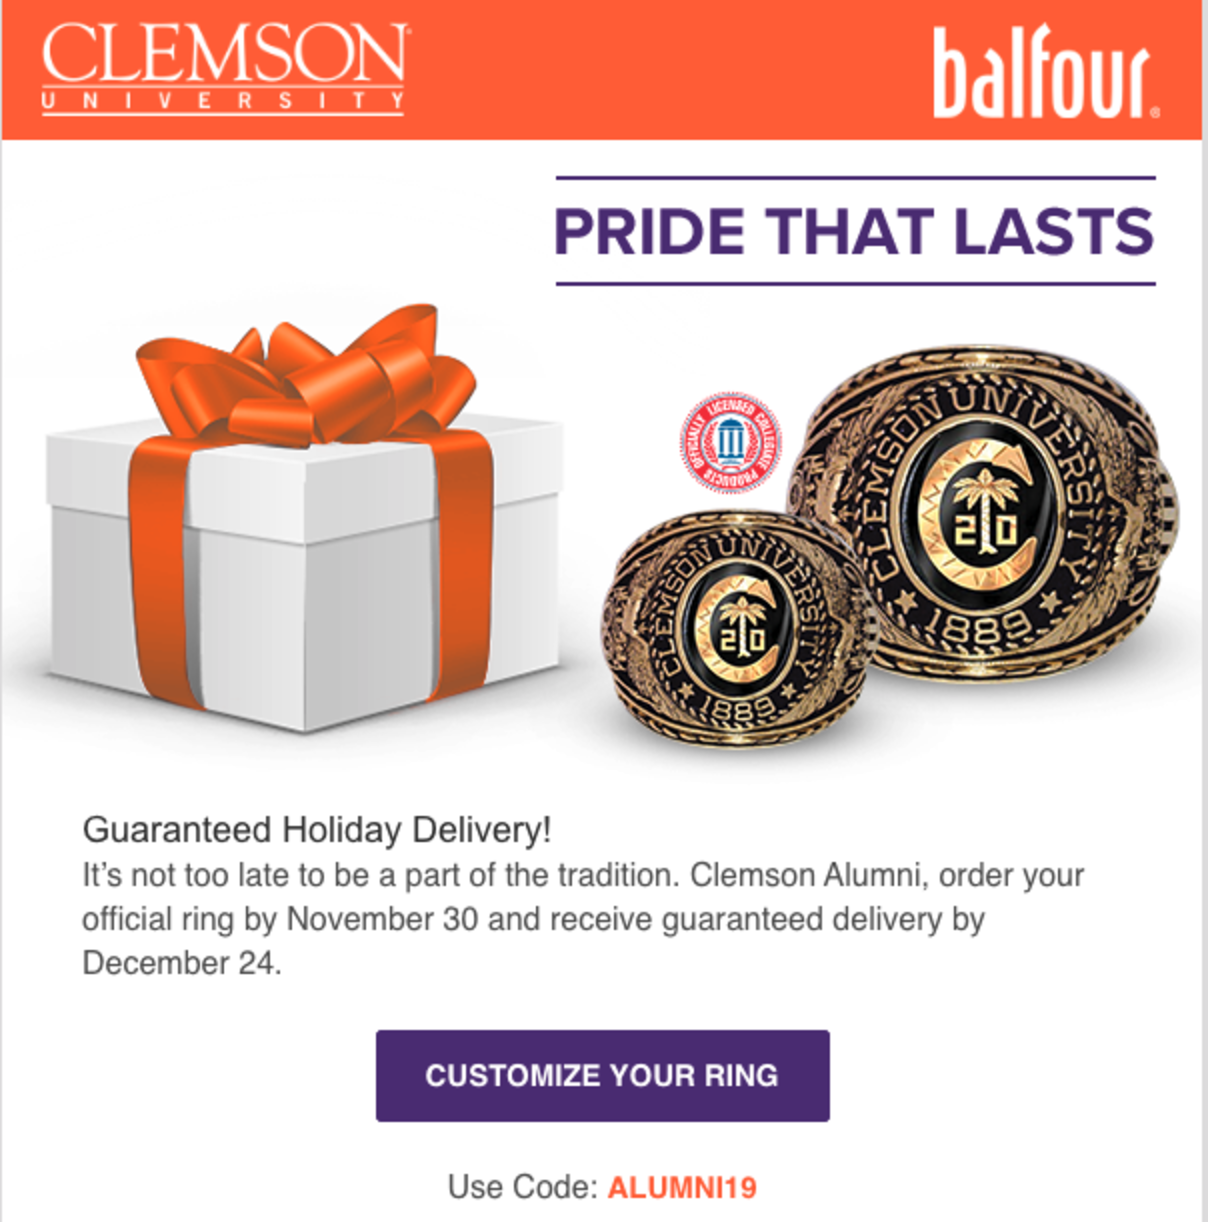 Clemson University and Balfour. Pride that lasts. Guaranteed Holiday Delviery! It's not too late to be a part of the tradition. Clemson Alumni, order your official ring by November 30 and receive guaranteed delivery by December 24. Customize your ring. Use code: ALUMNI19